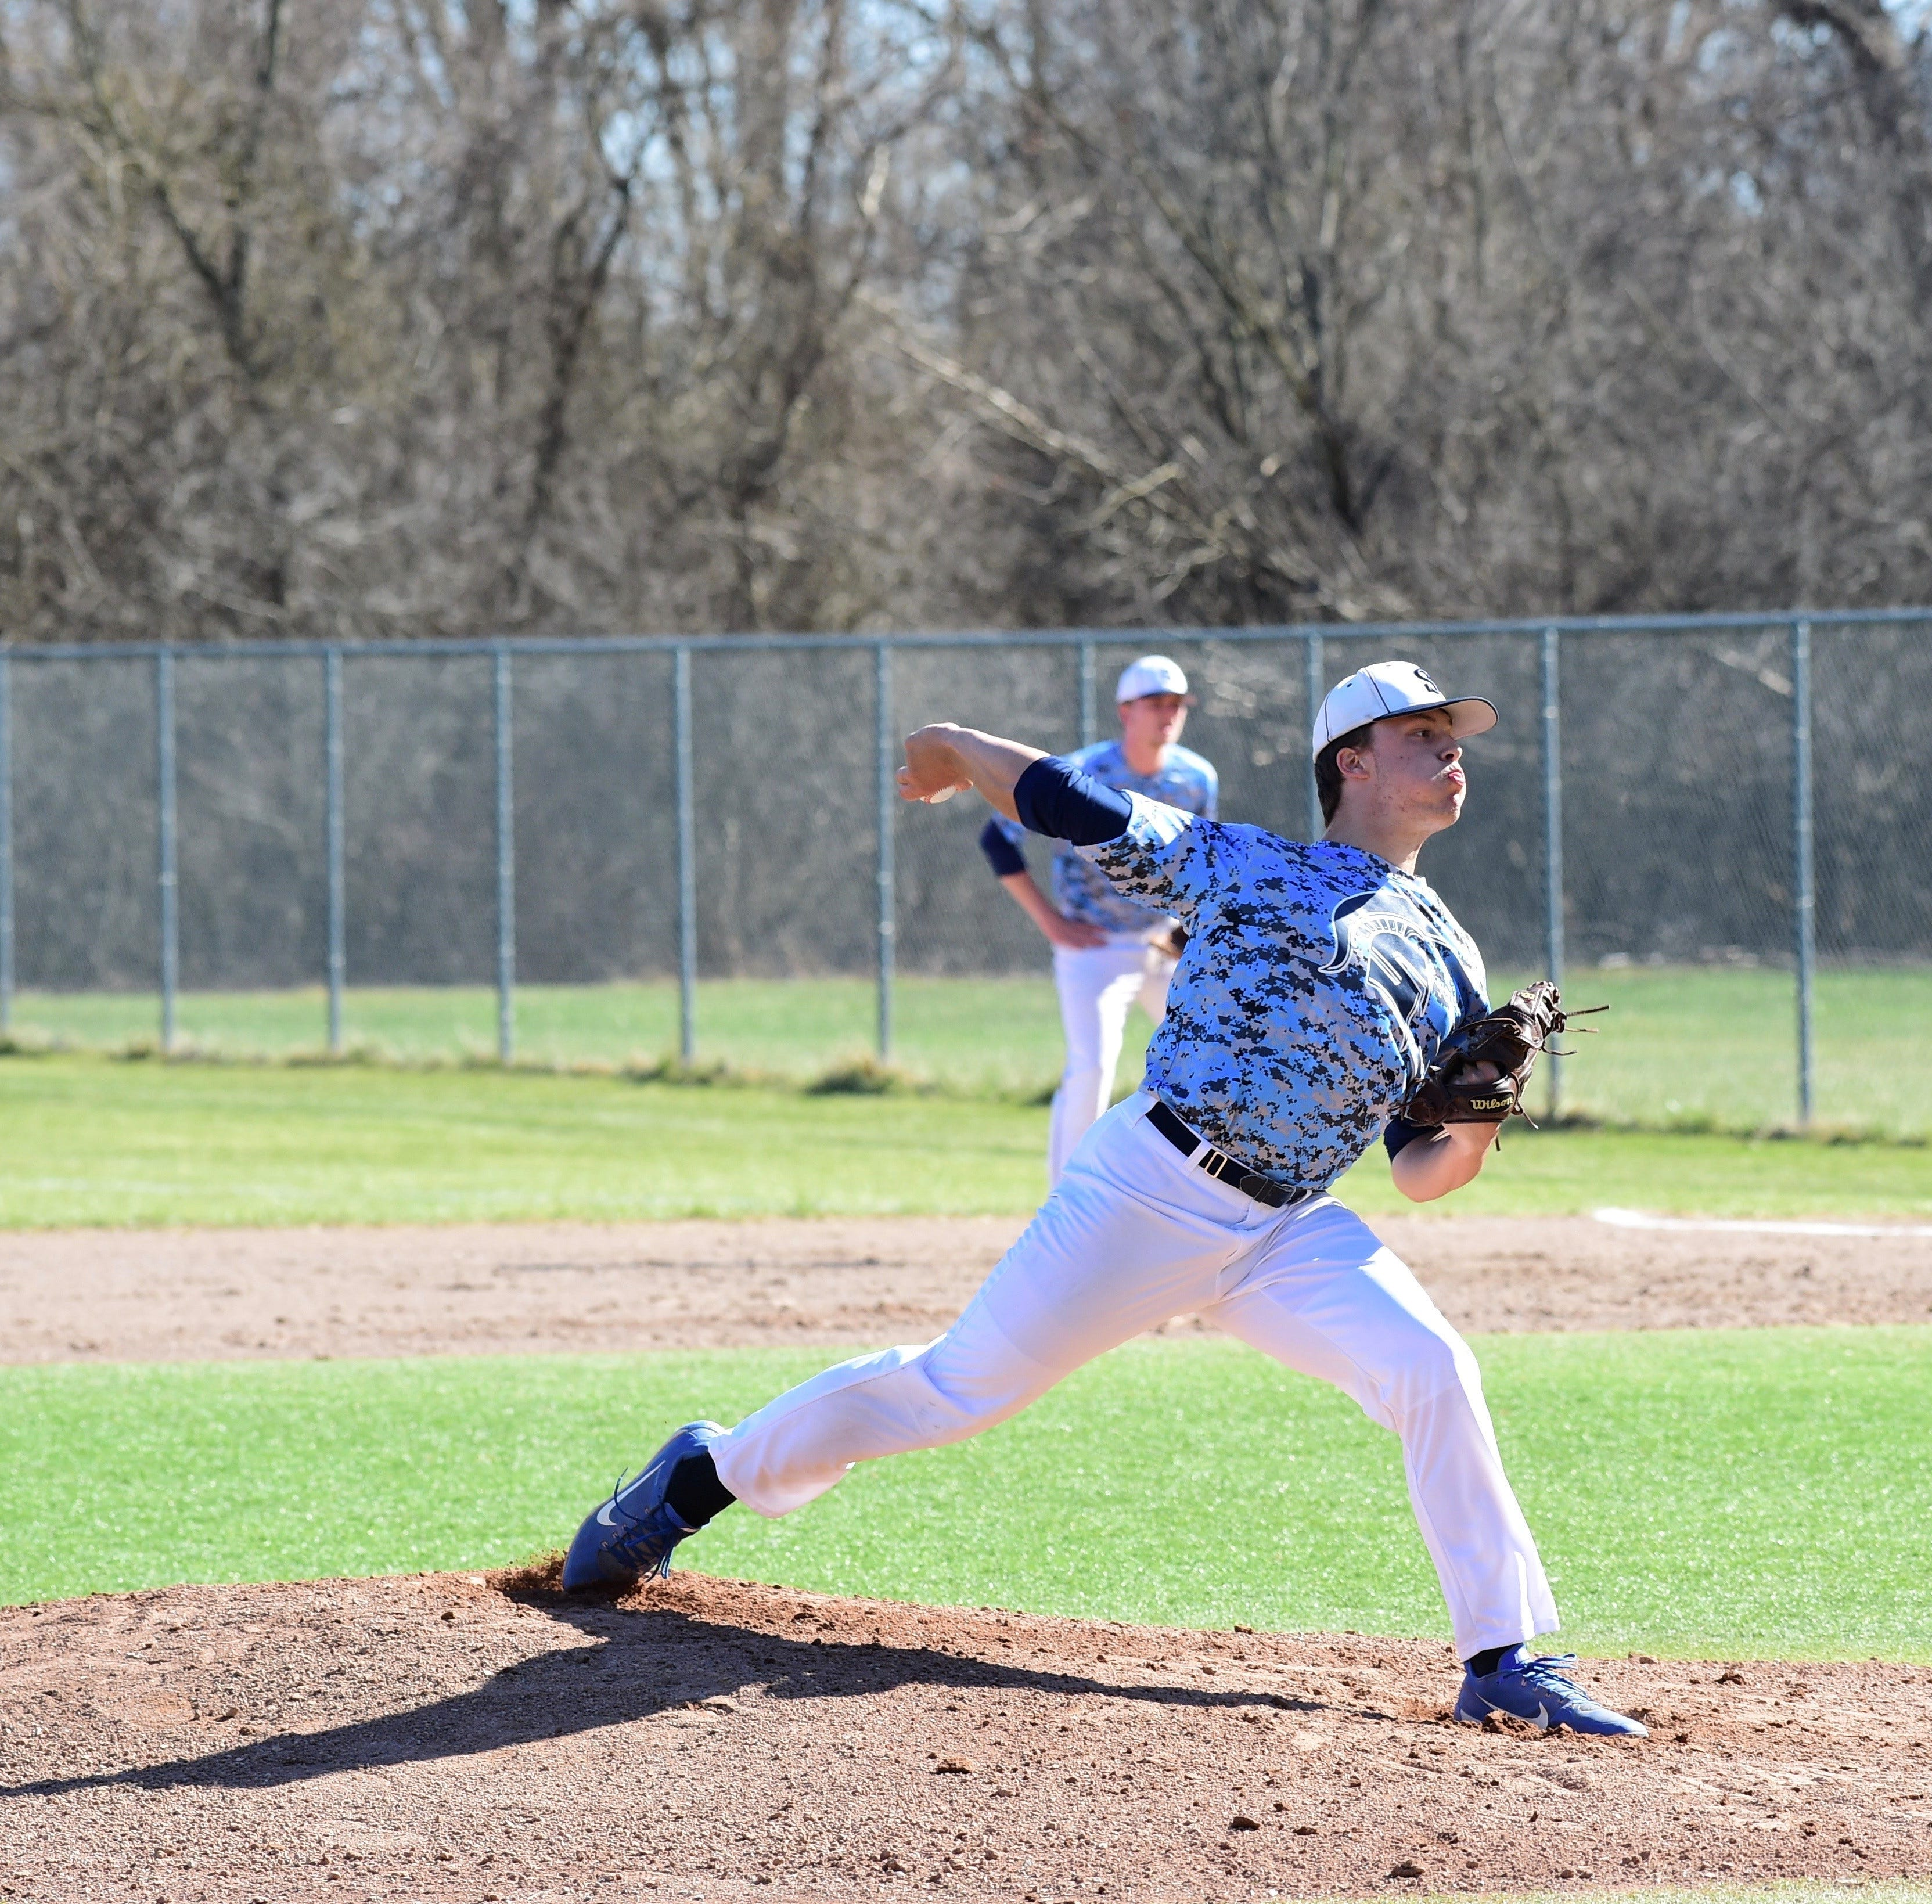 Strong pitching leads Livonia Stevenson baseball past Livonia Churchill in city showdown